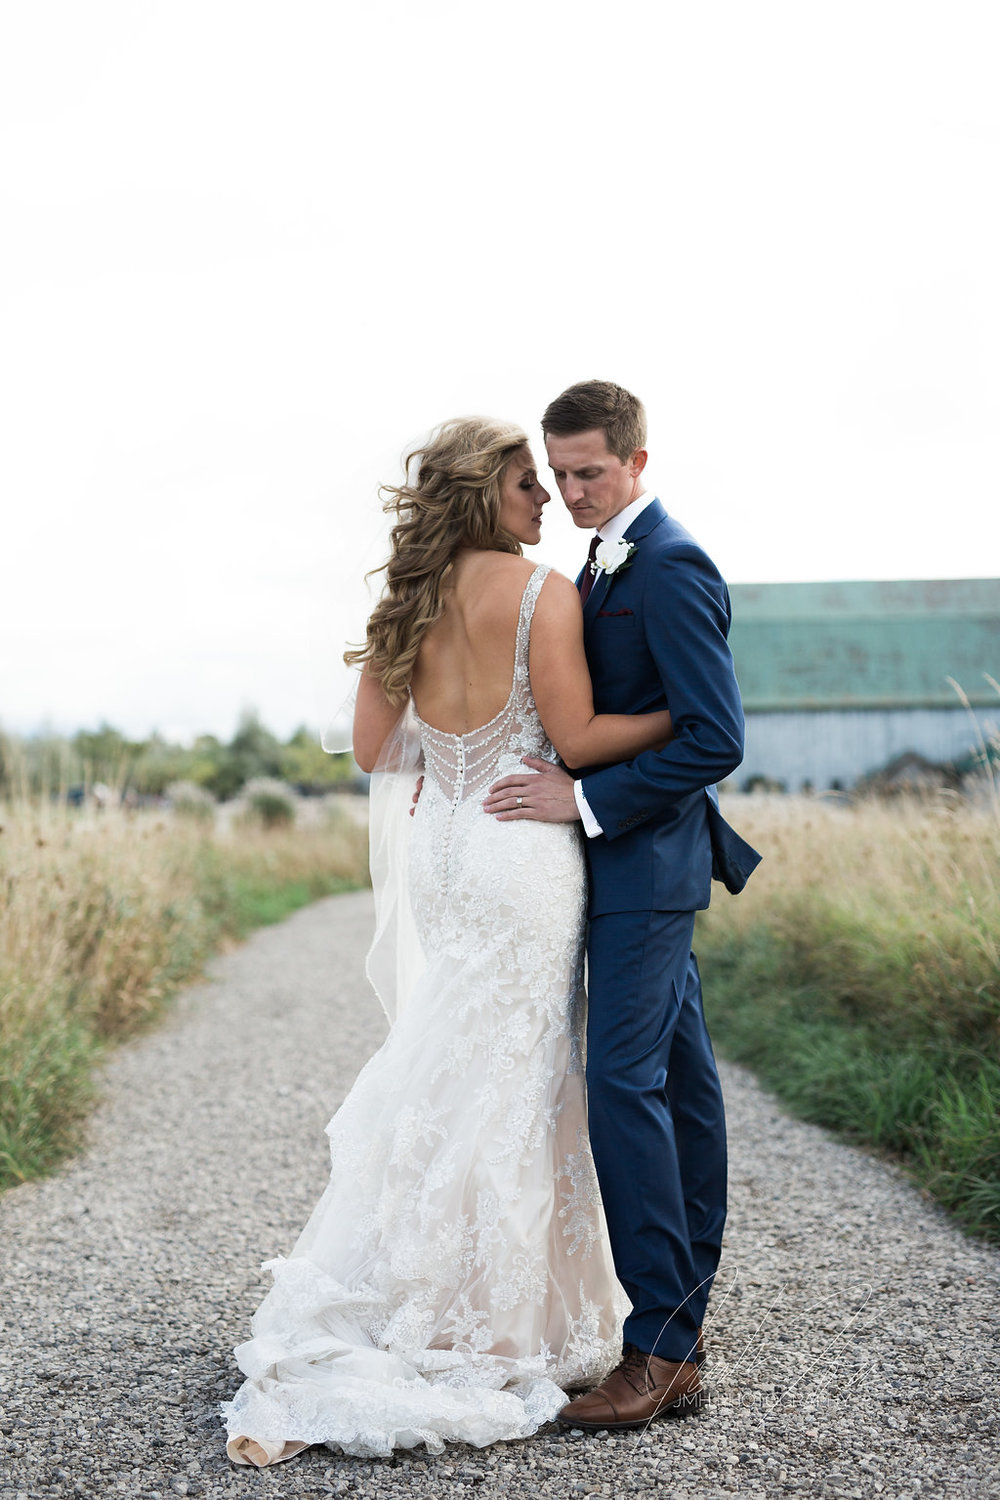 JMH_Photography_shanahans_barn_charlevoix_michigan_wedding_elegant-4.jpg